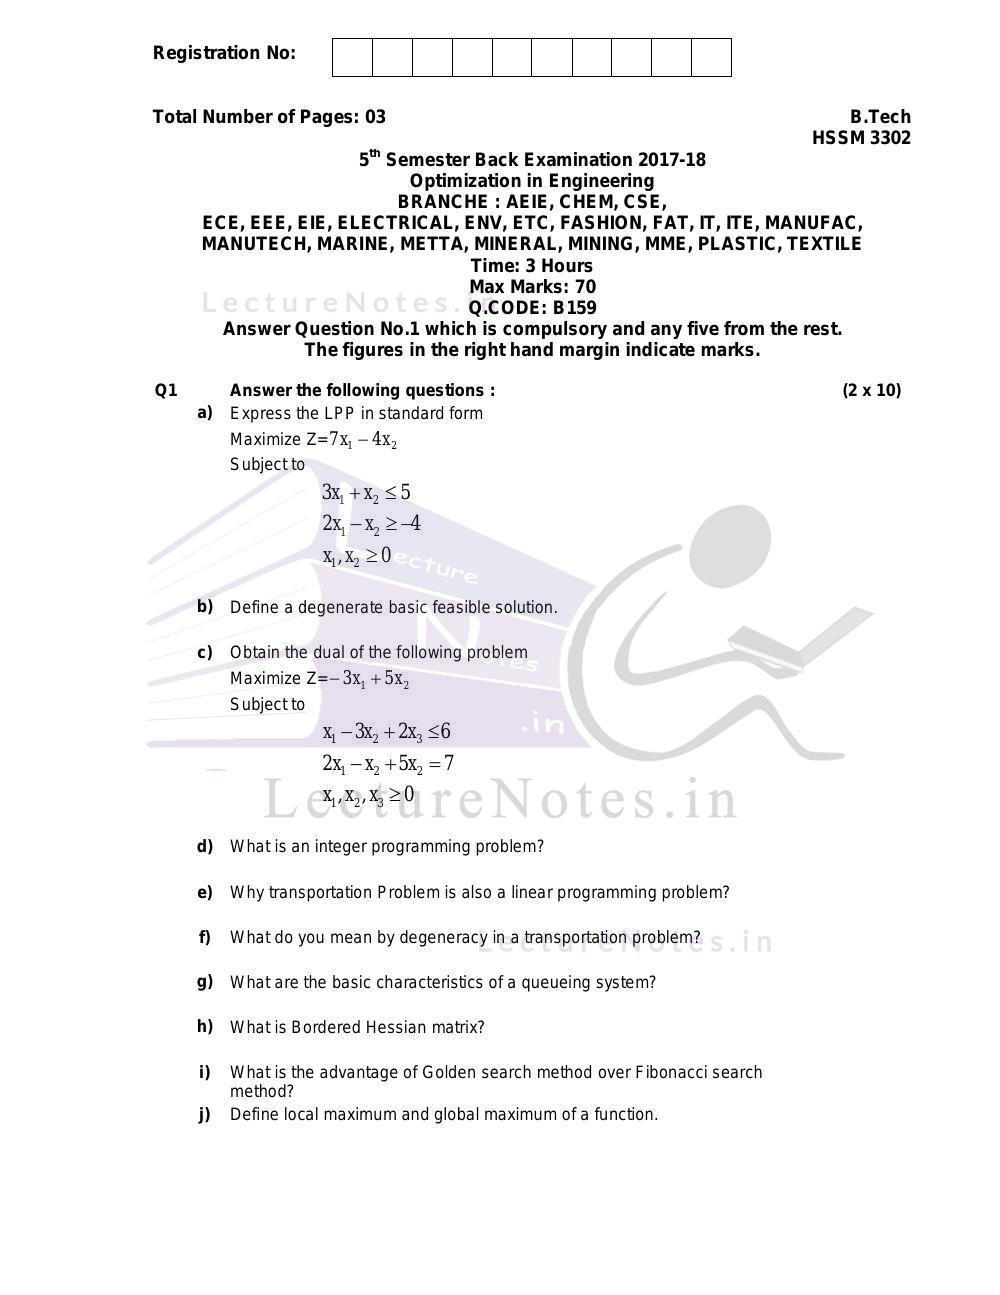 Previous Year Exam Questions of Optimization in